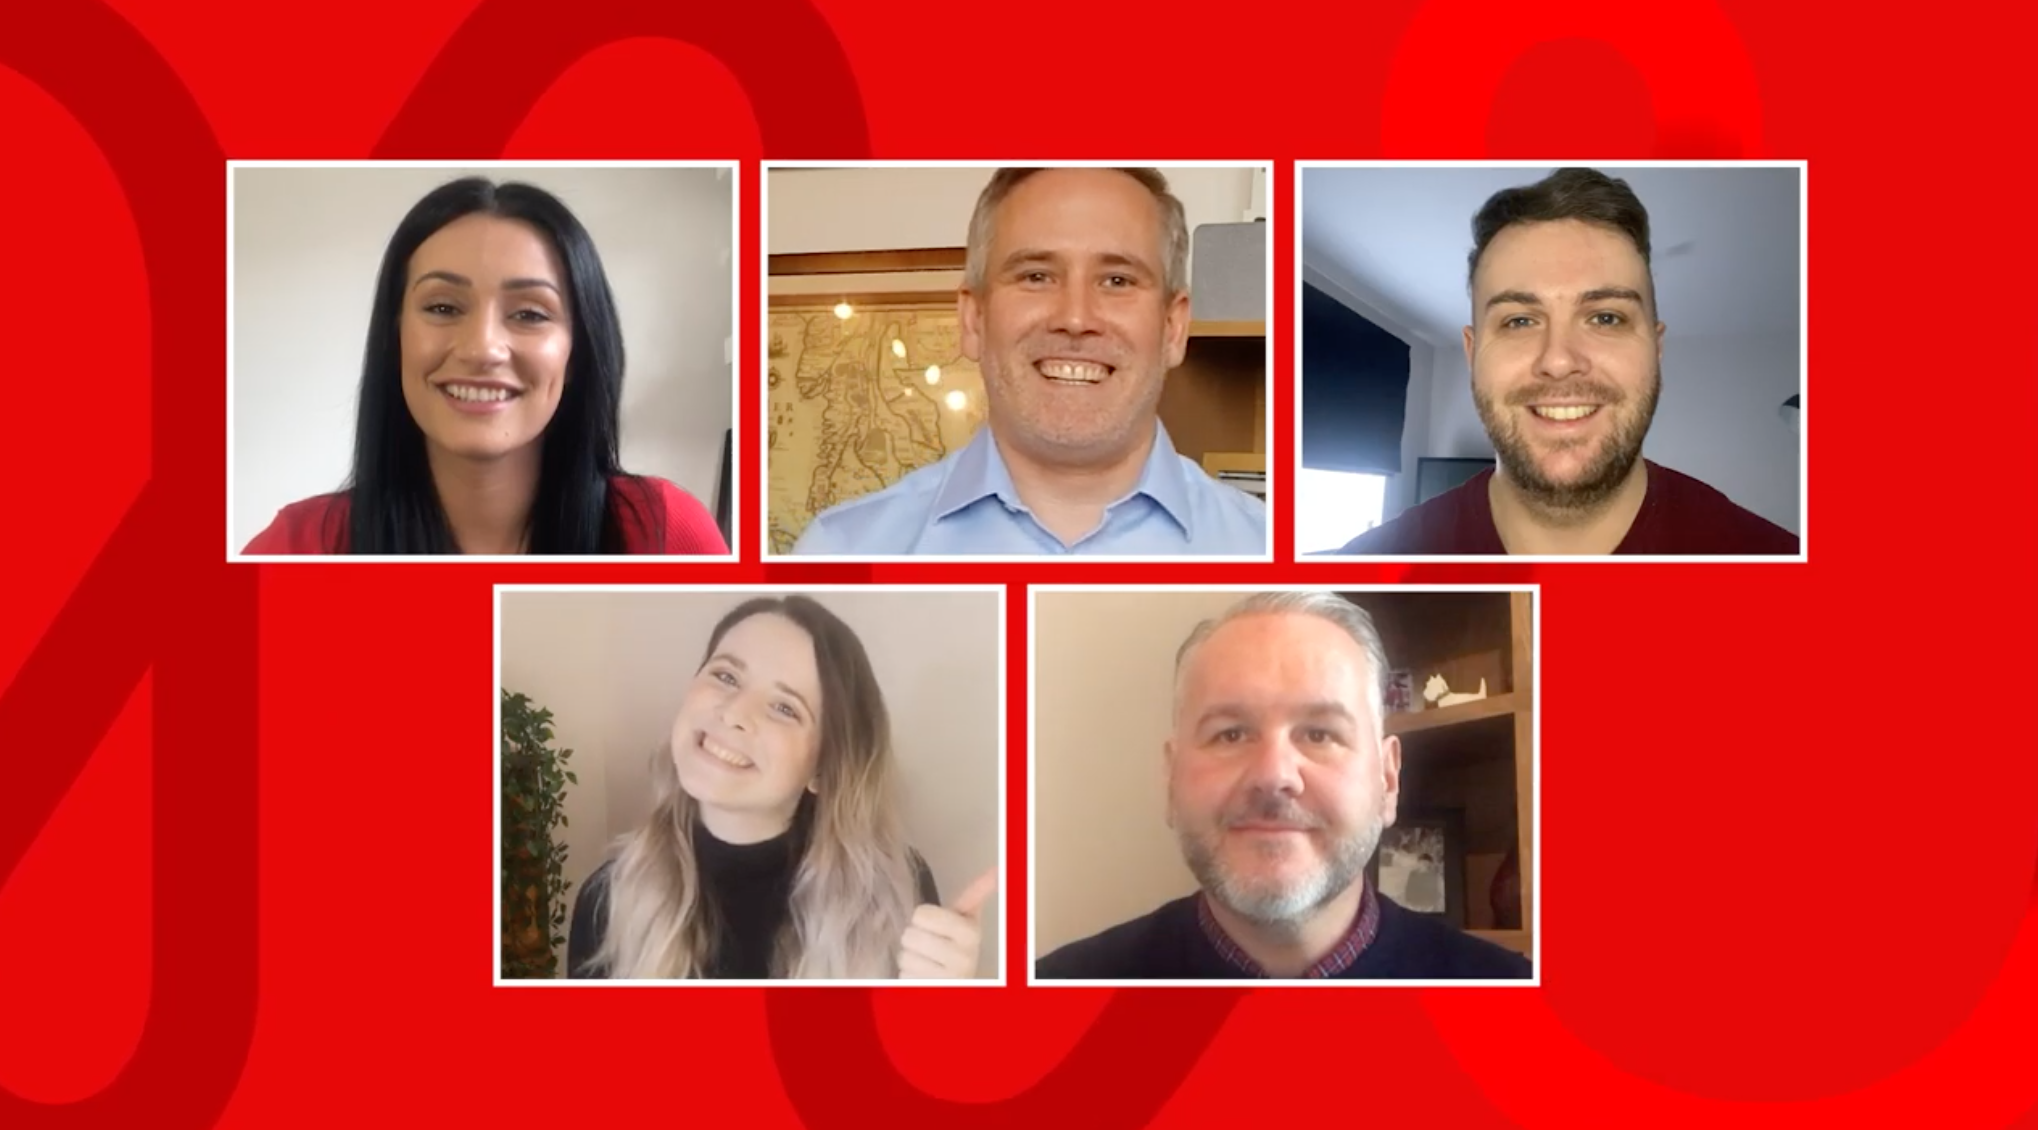 A still from the Virgin Money Red's Youtube channel.  Head shots of the team.